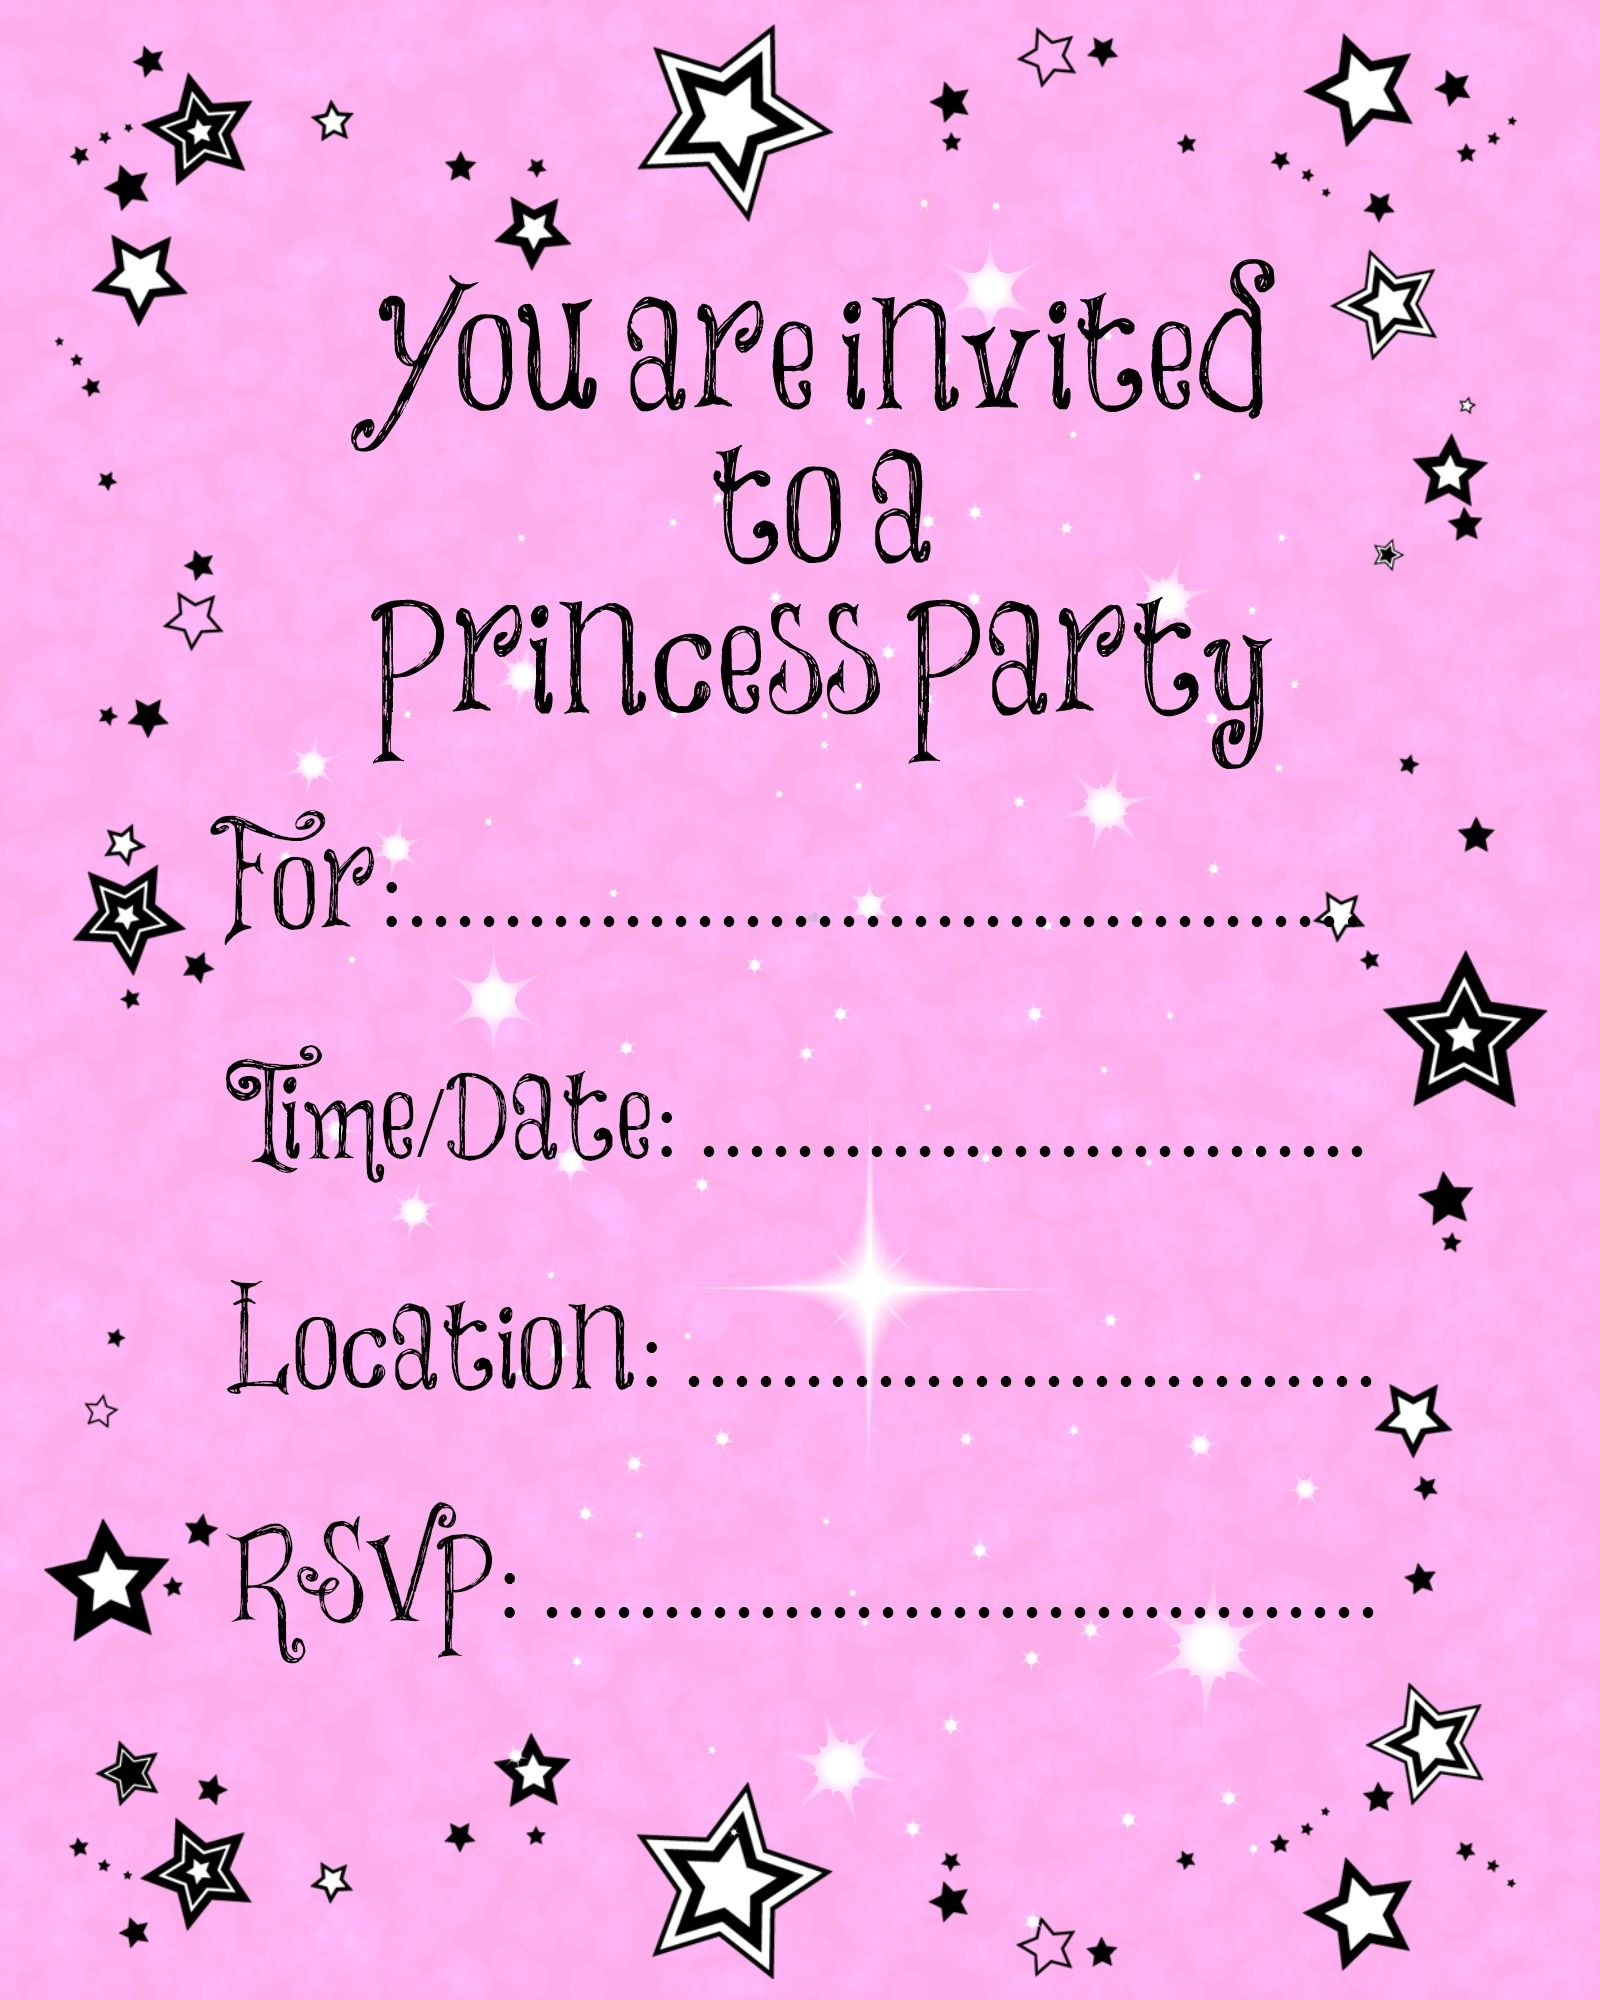 Free invitation card maker etamemibawa free invitation card maker bookmarktalkfo